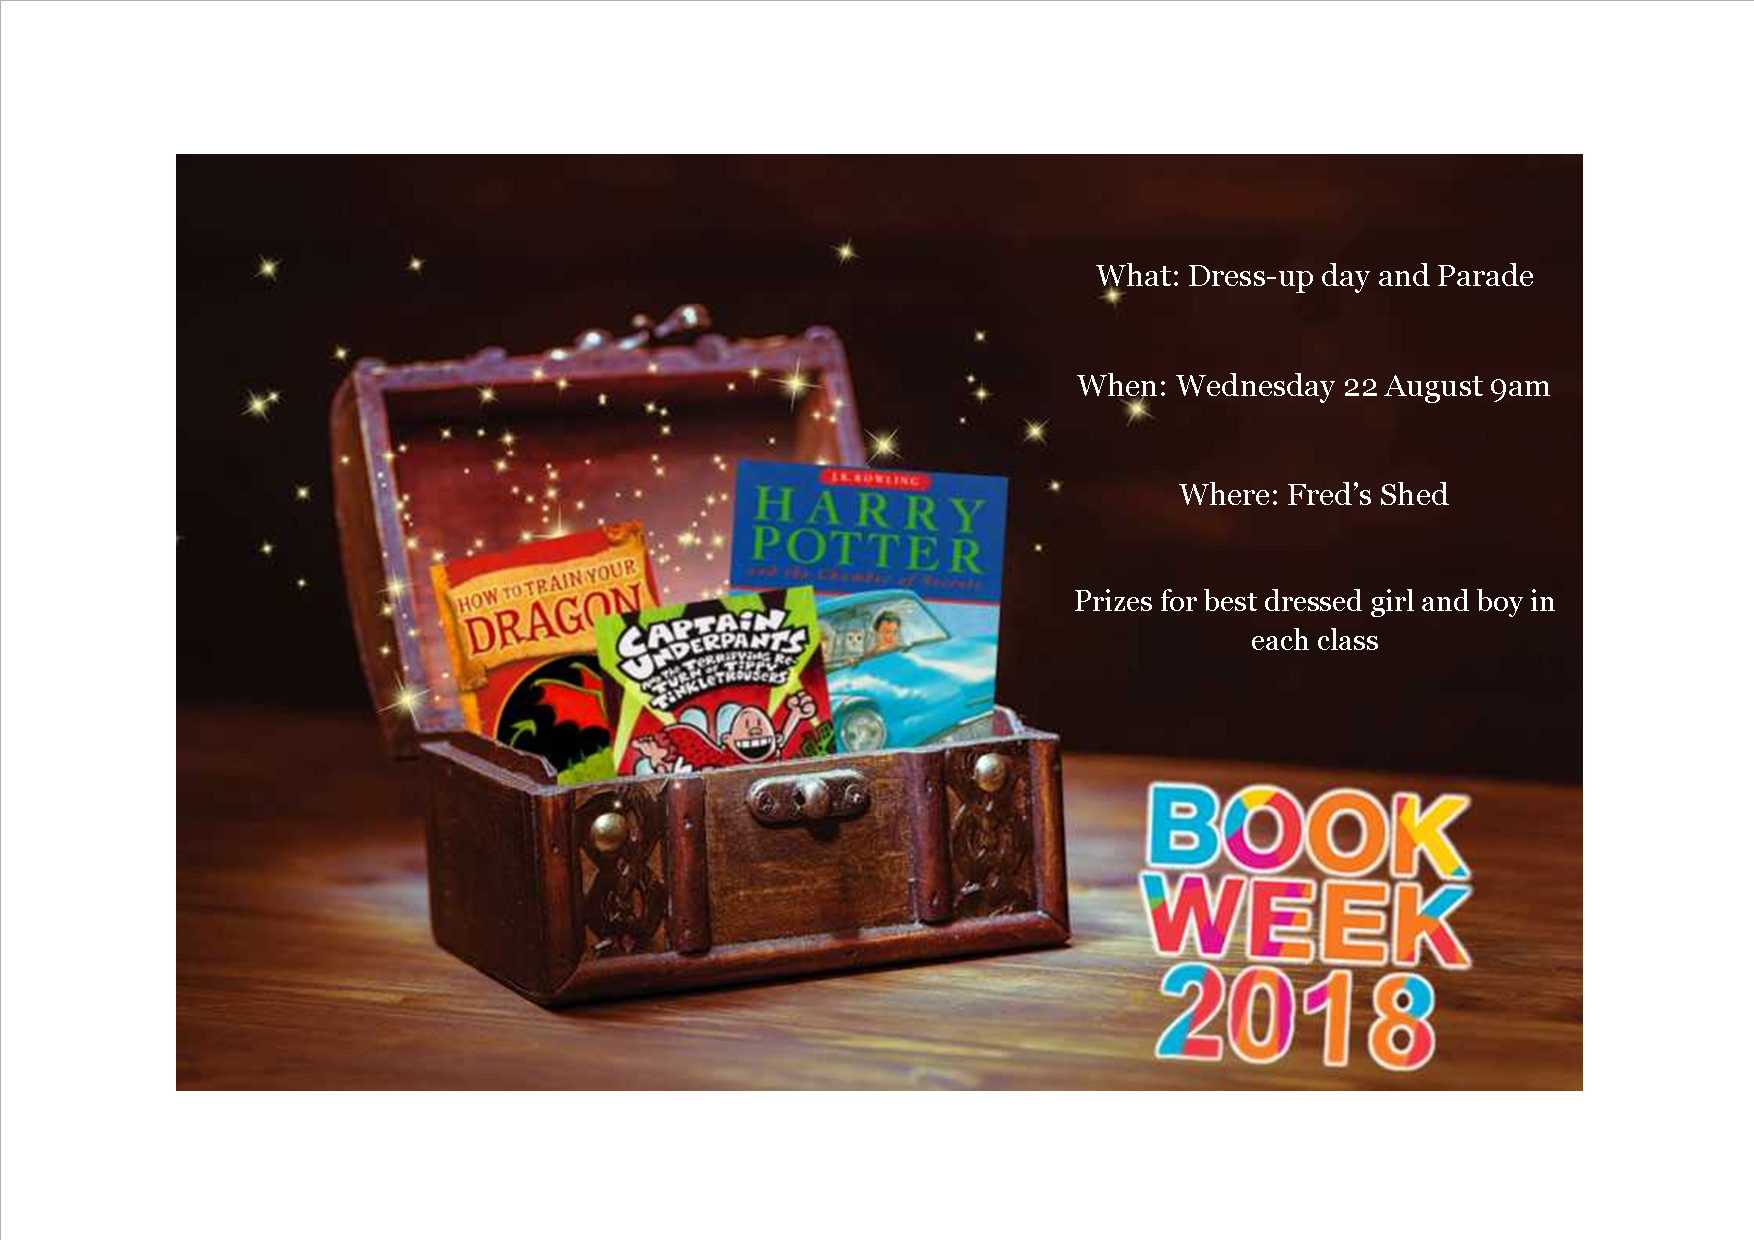 Book Week Parade - Tomorrow